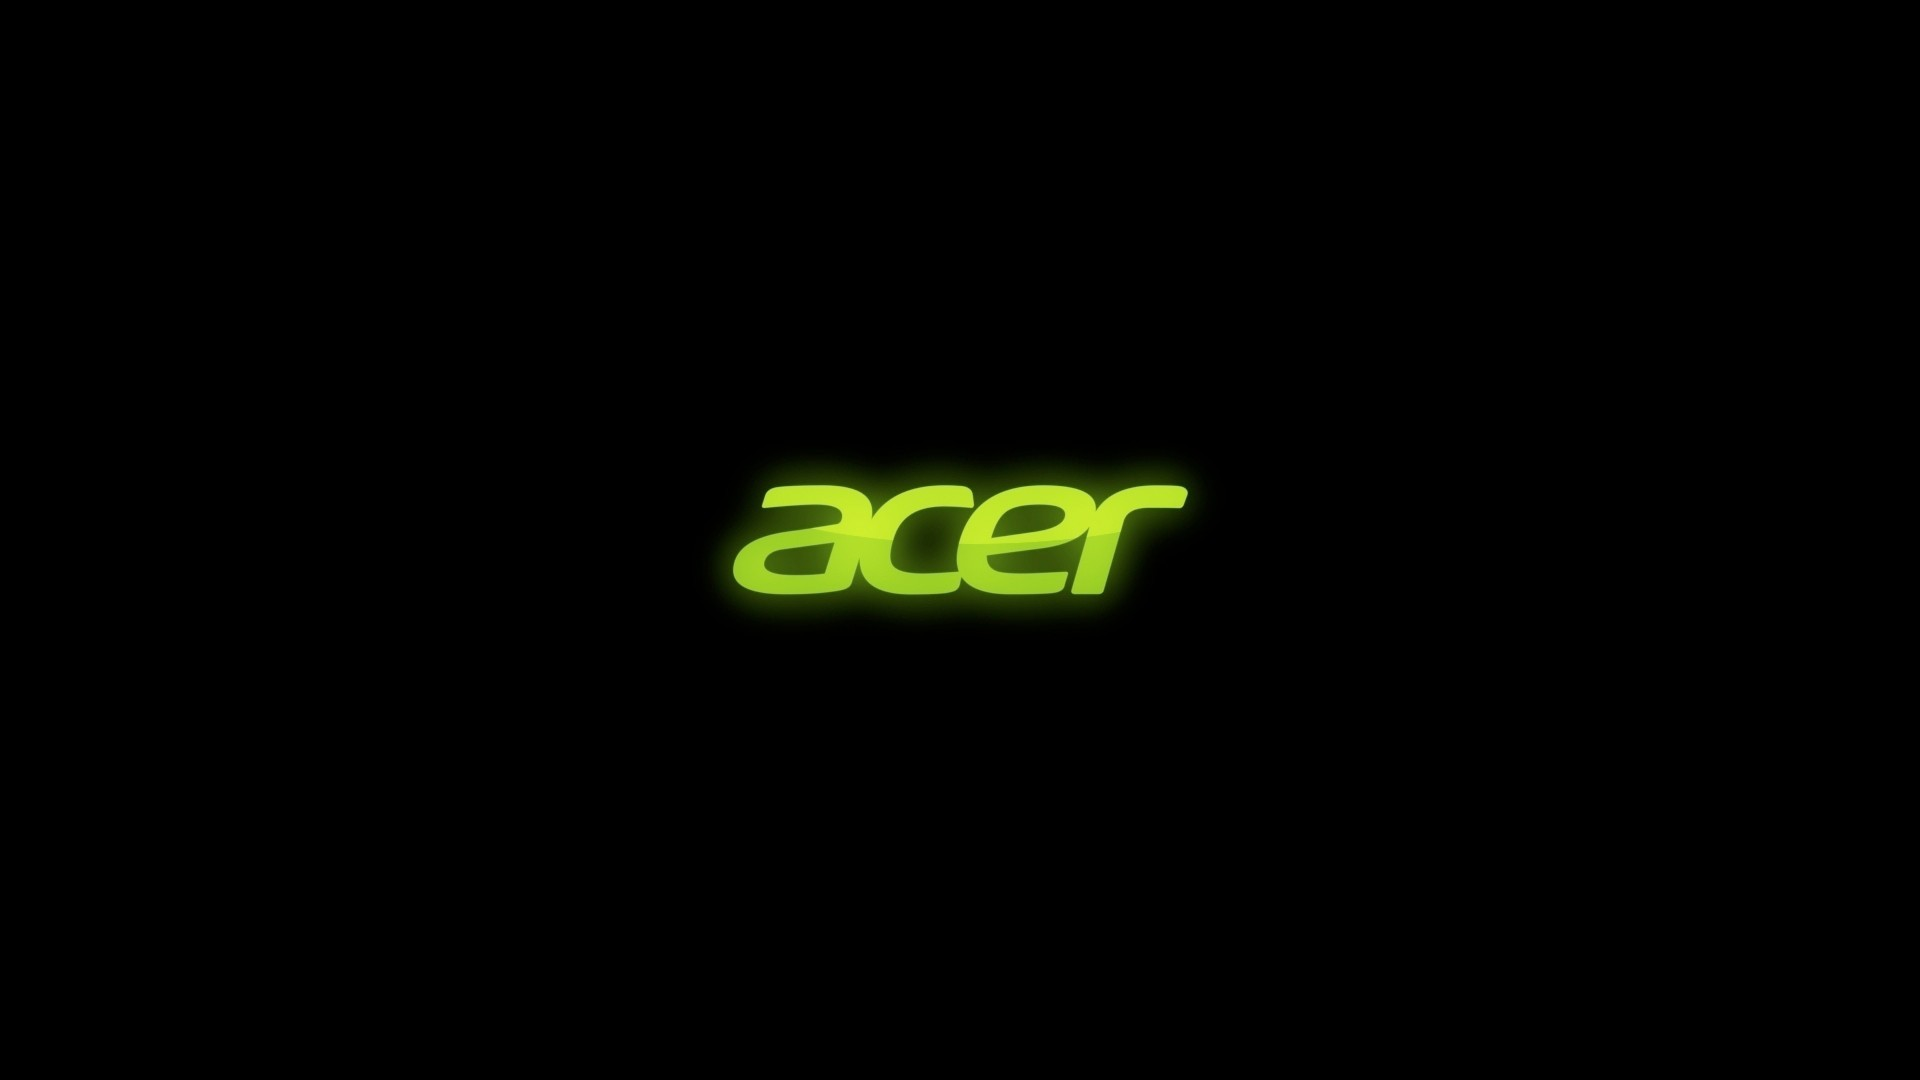 1920x1080  Download Wallpaper  Acer, Firm, Green, Black Full HD  1080p HD .